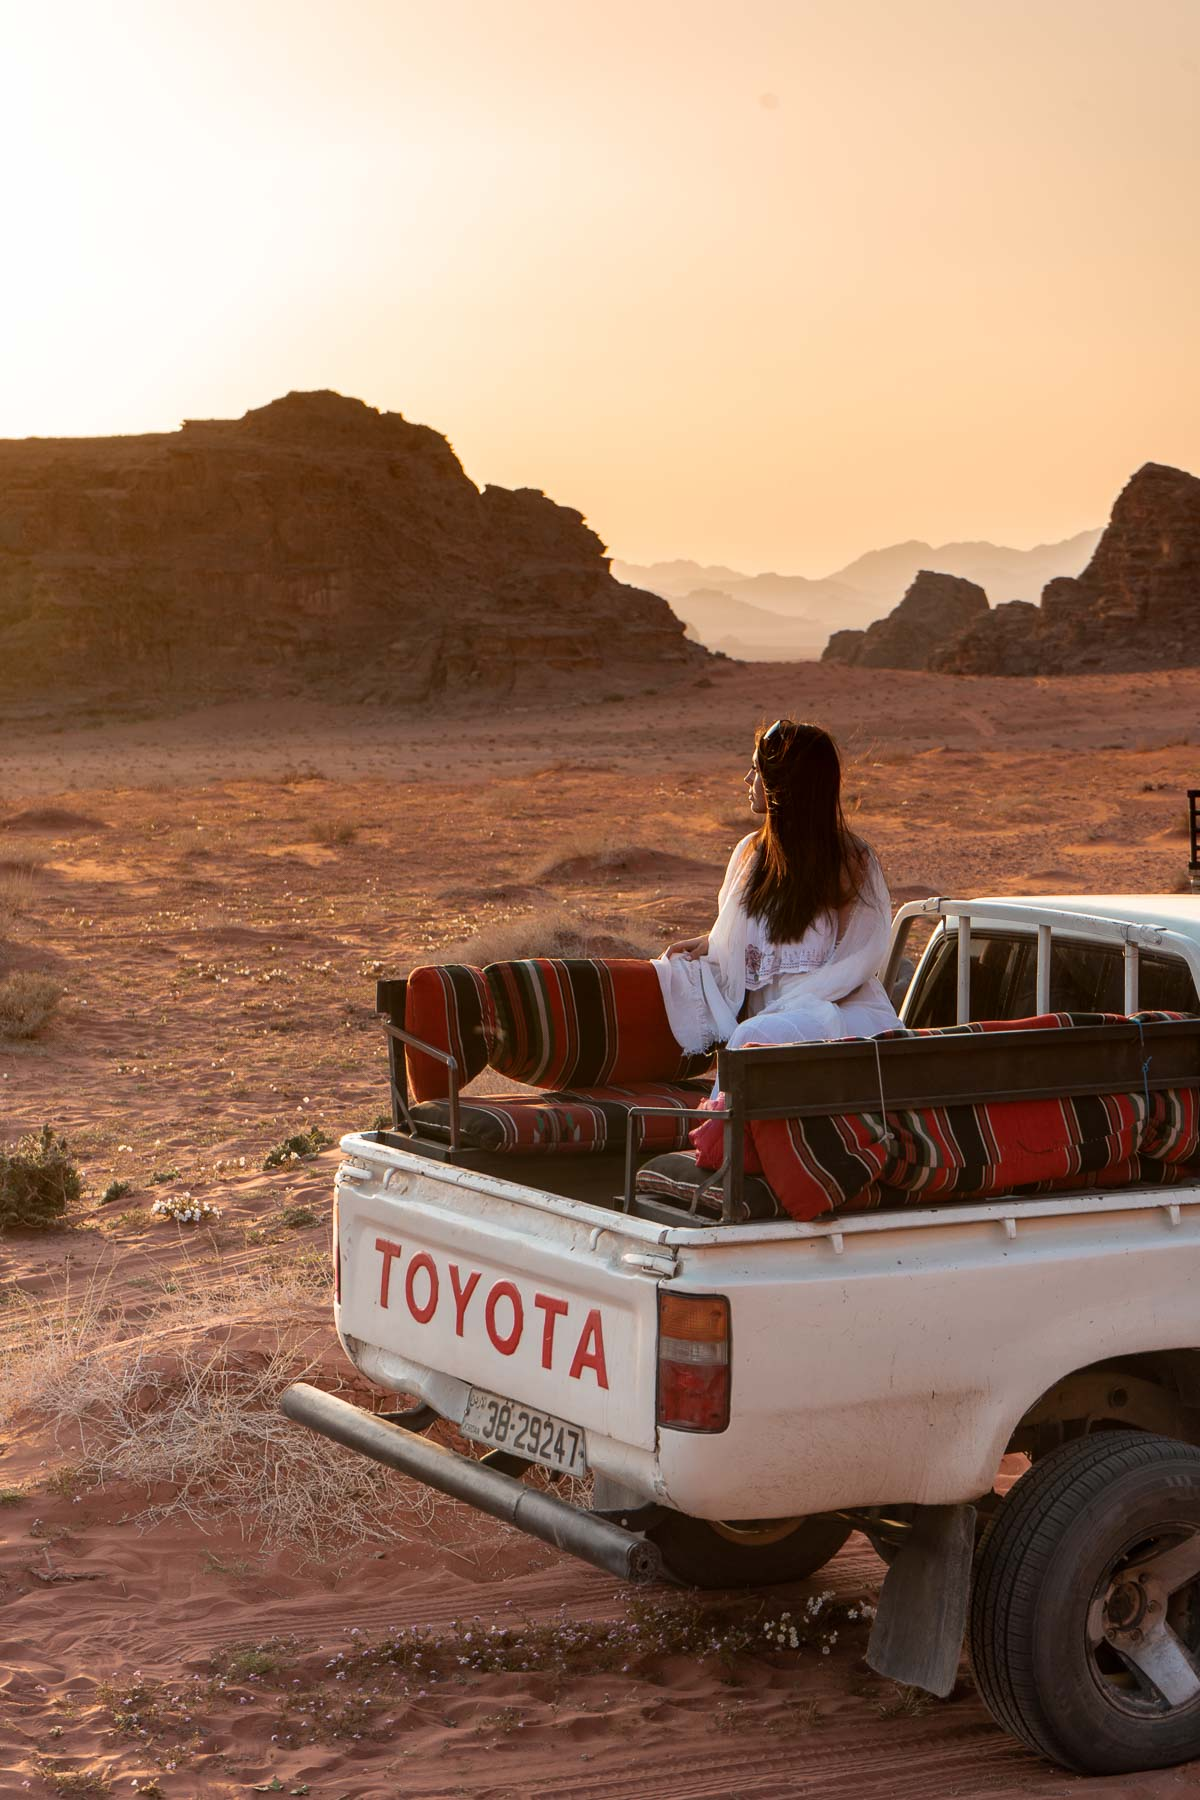 Girl in a white dress watching the sunset in a pick-up truck in the Wadi Rum, Jordan